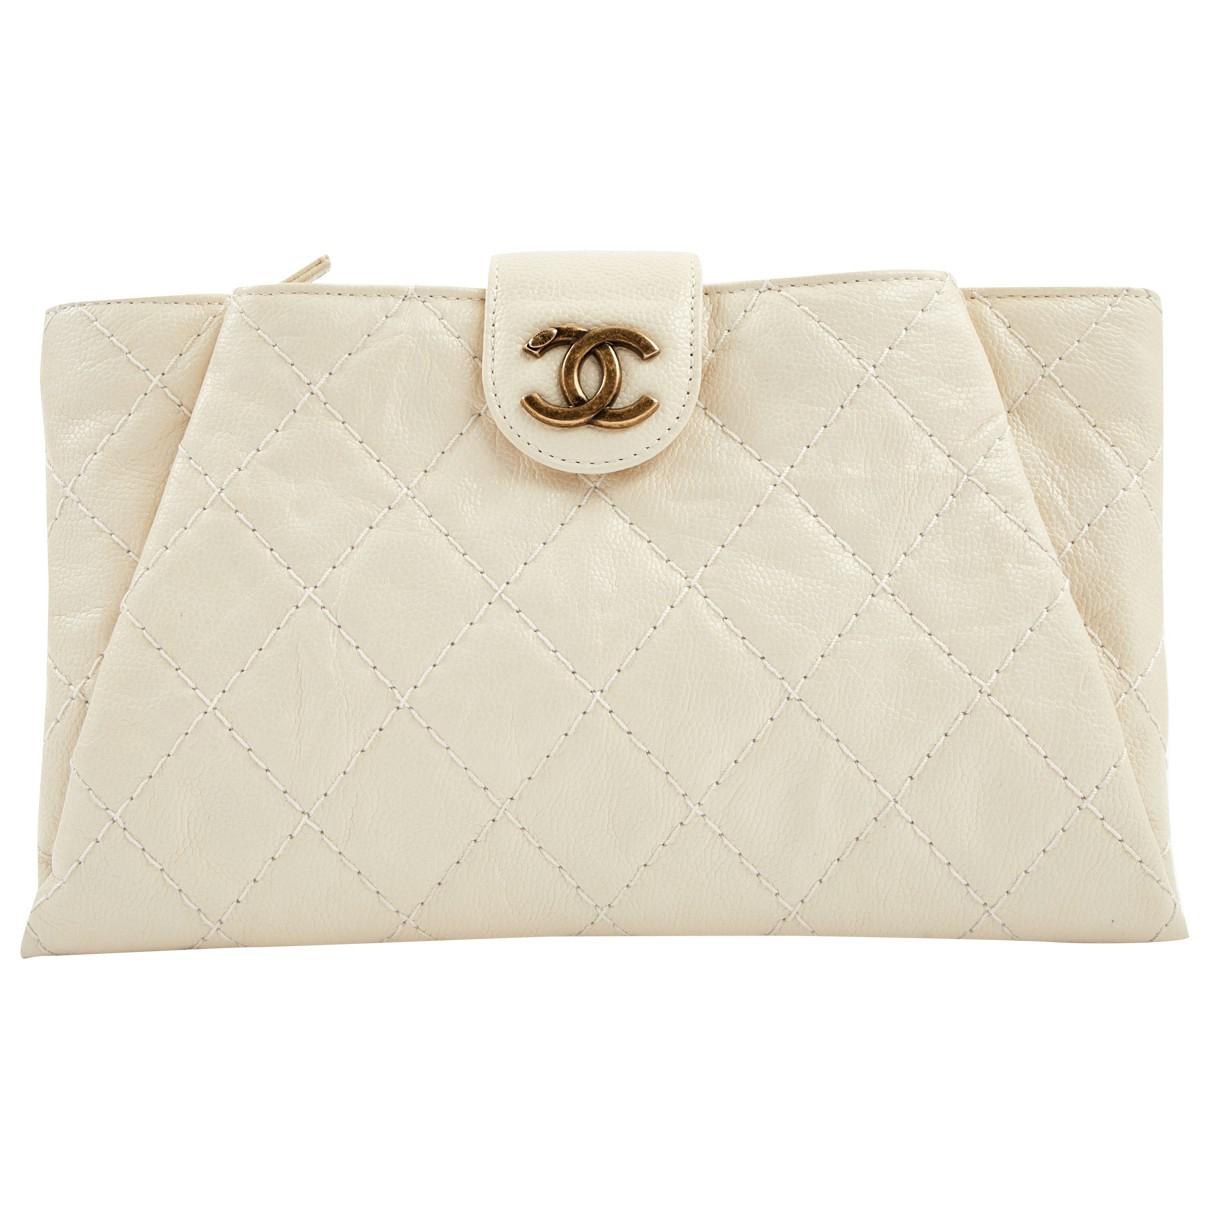 a2143ad9b Chanel Pre-owned Leather Clutch Bag - Lyst